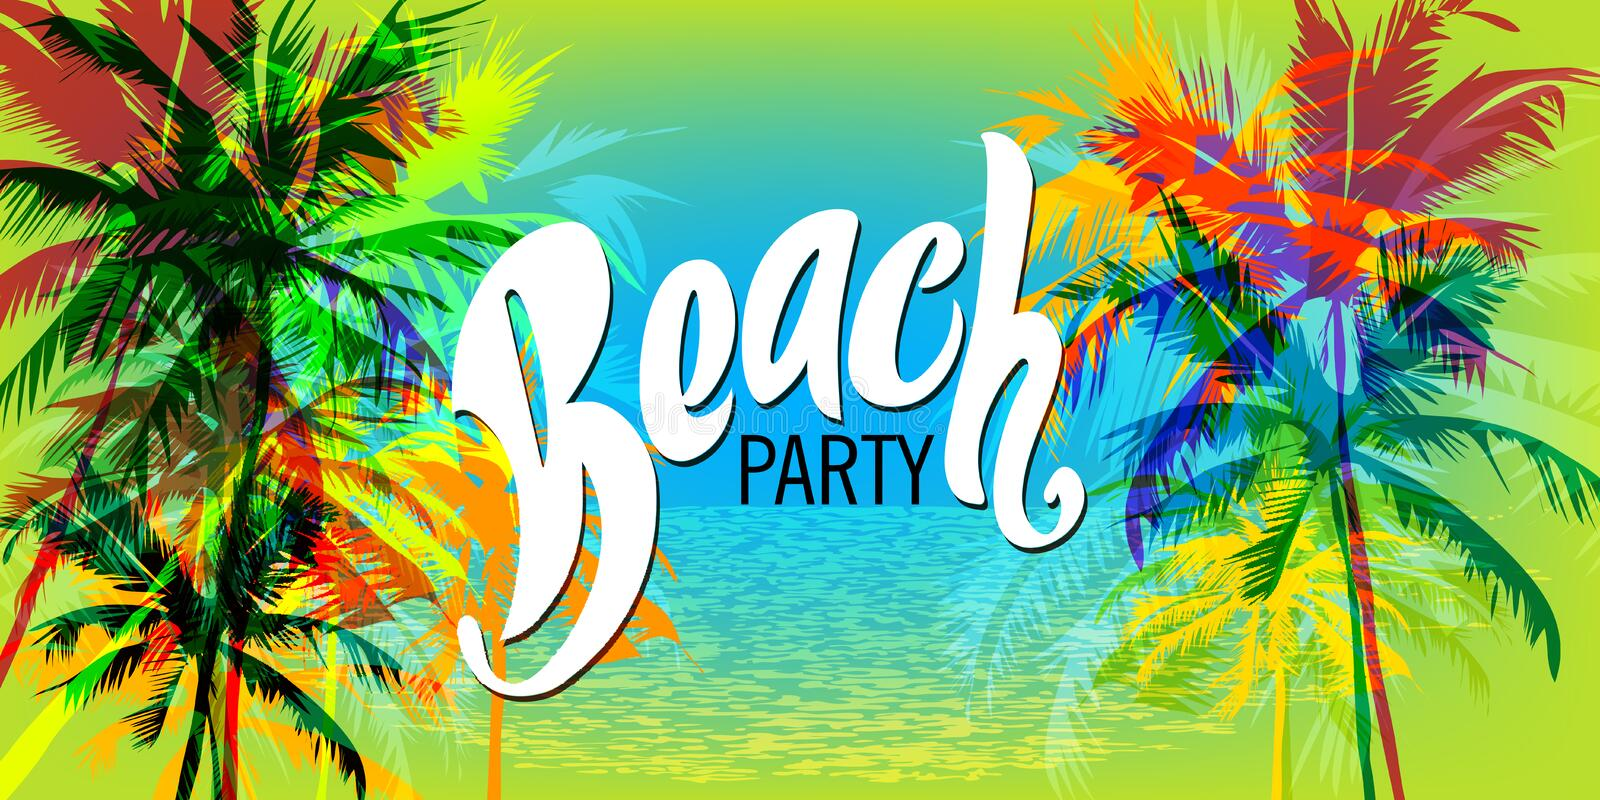 Beach party poster. Template with palm trees and typographic element. Summer beach vector illustration stock illustration